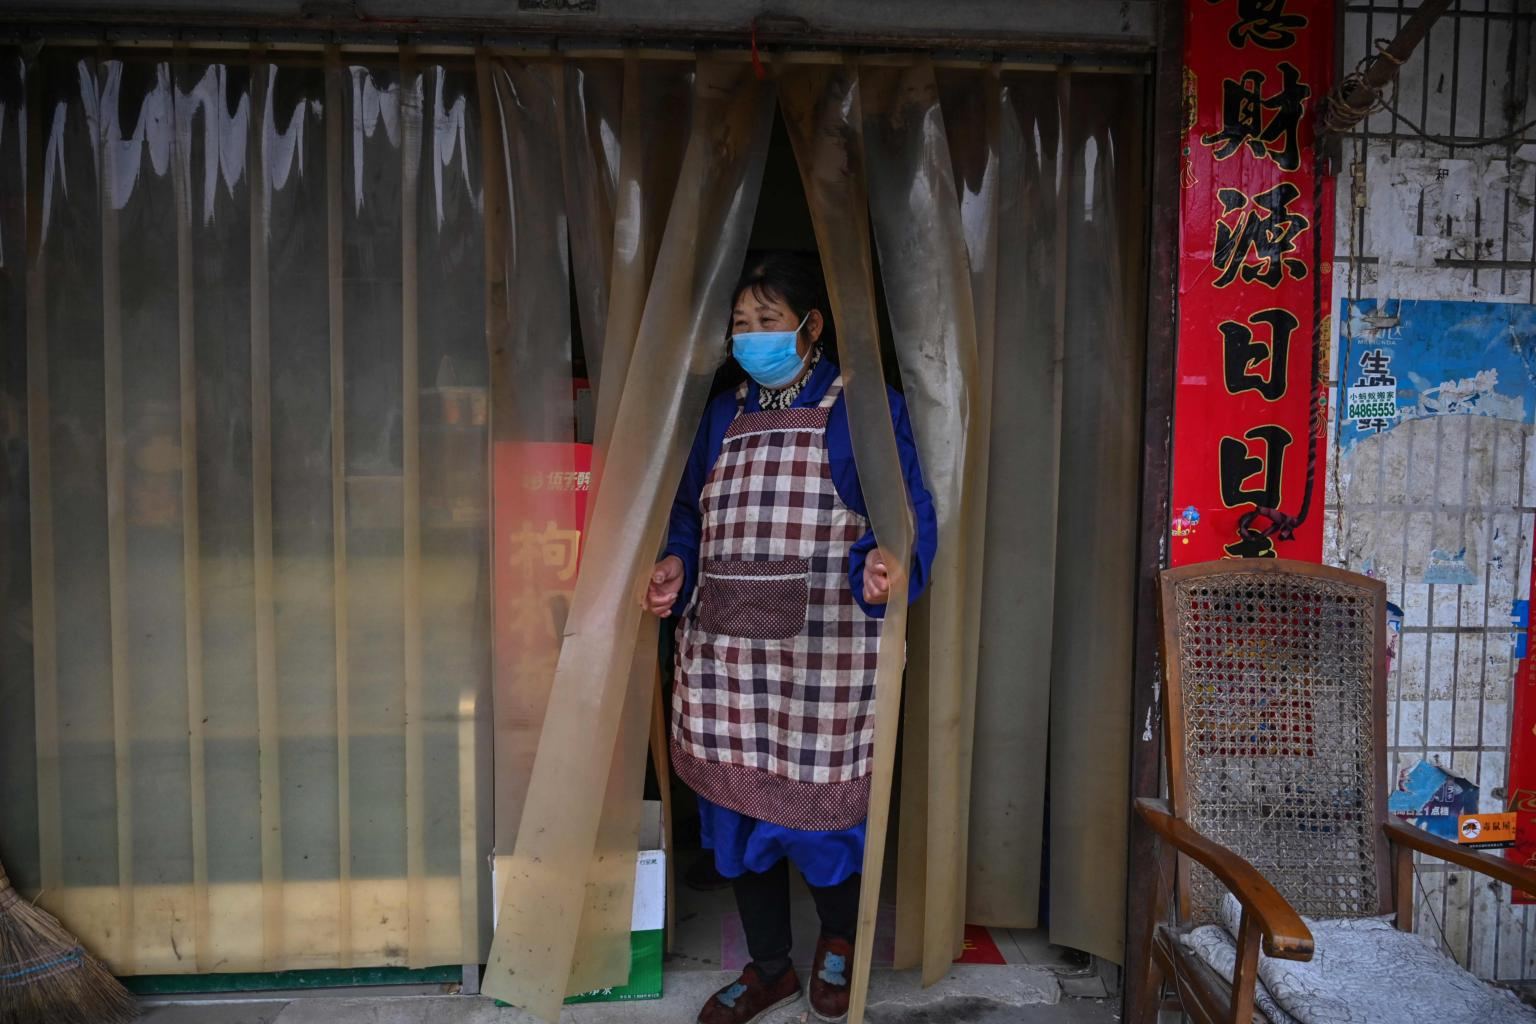 Wuhan virus: Death toll jumps to 106, nearly 1,300 new cases as Chinese citizens urged to reconsider overseas travel